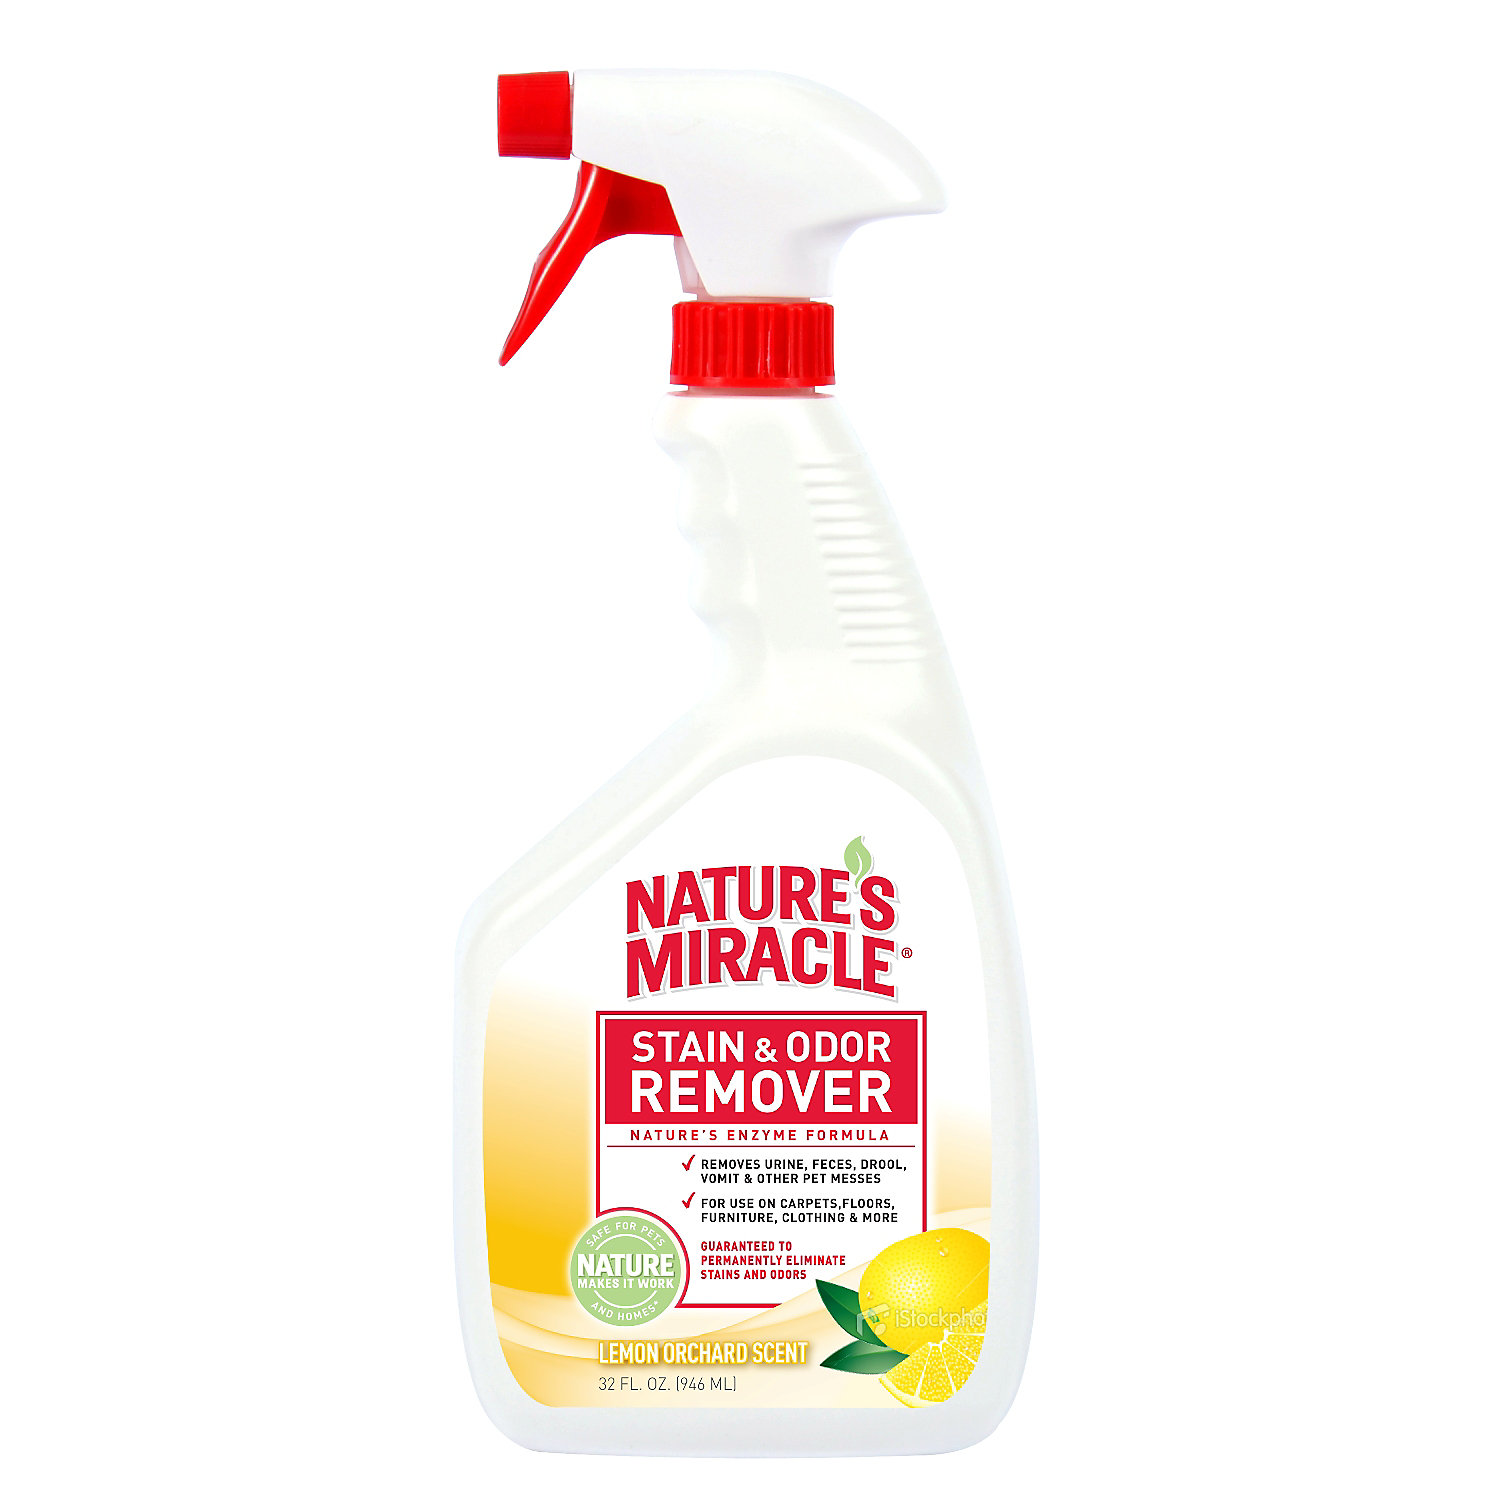 Natures Miracle Lemon Scented Stain Odor Remover 32 Fl. Oz.